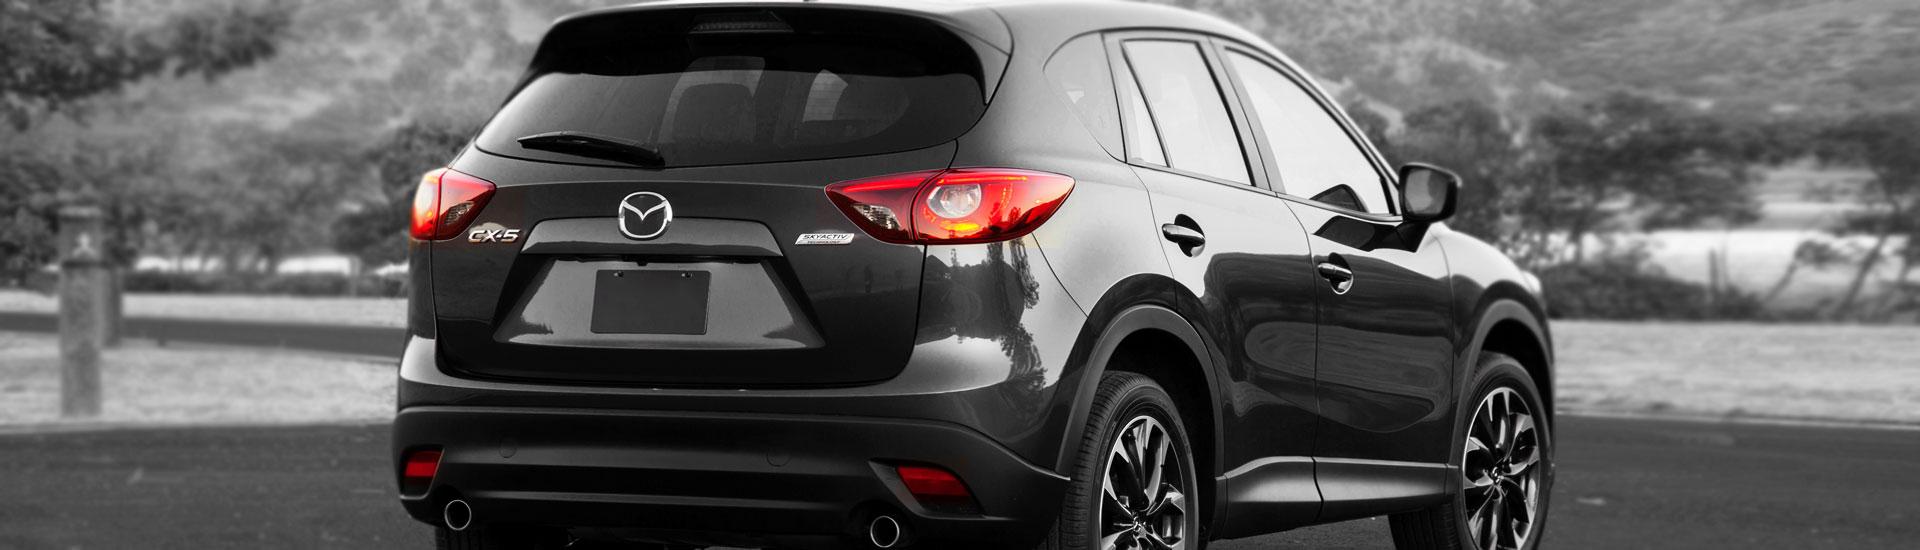 Mazda CX-5 Window Tint